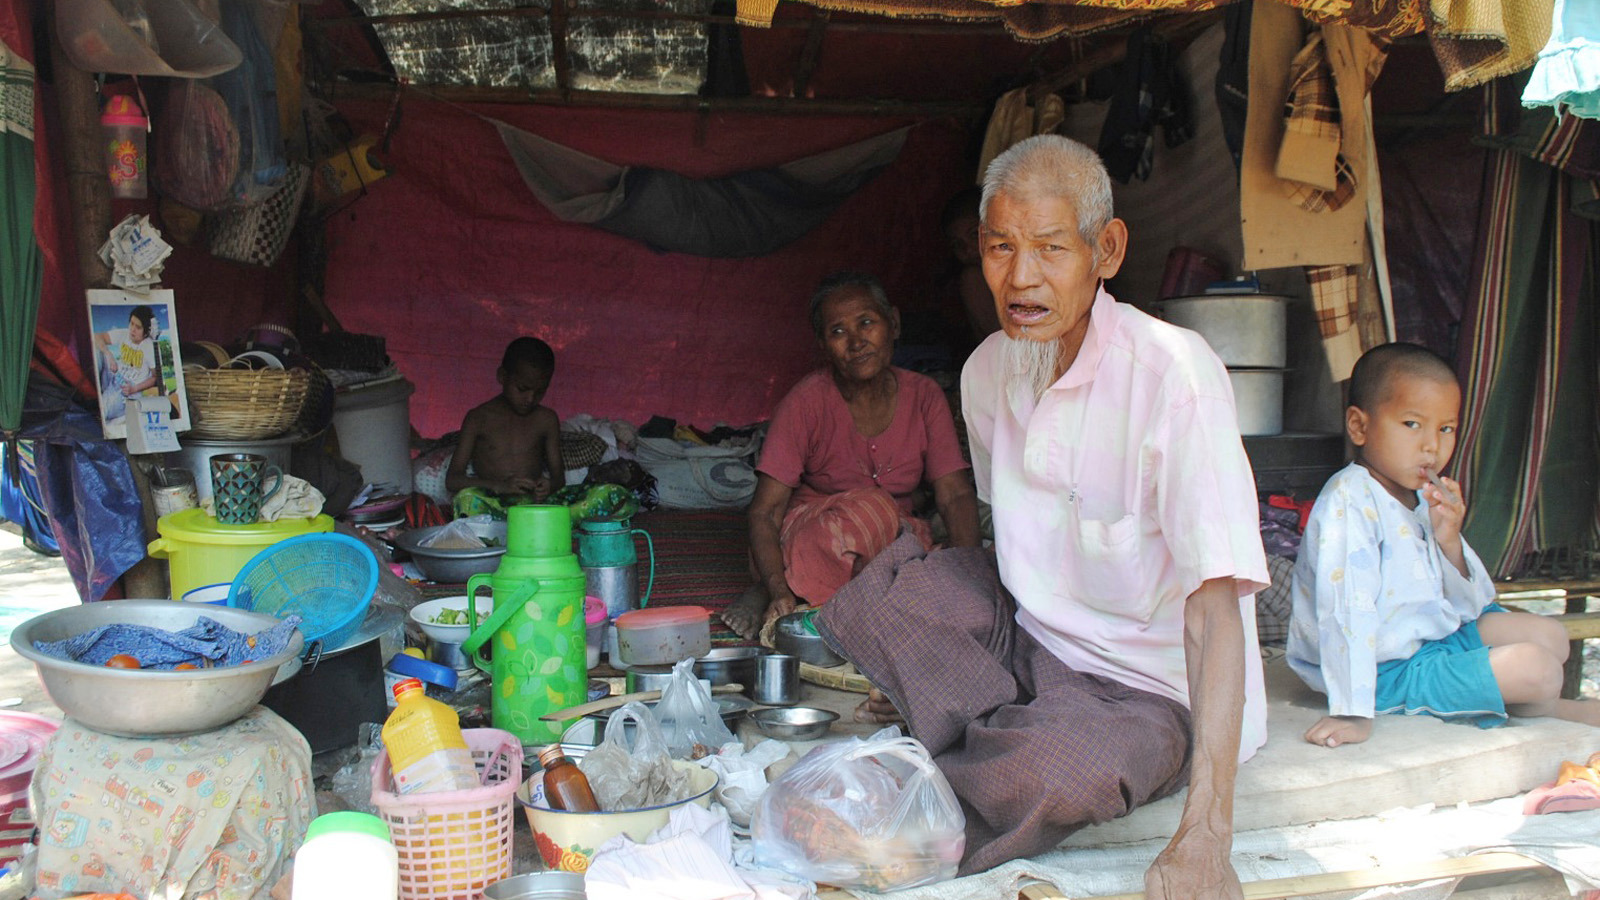 Interfaith marriages are rare in Myanmar, a predominantly Buddhist country. This couple, a Muslim man and a Buddhist woman were among those forced to flee their home after communal violence broke out in Meiktila in 2013.